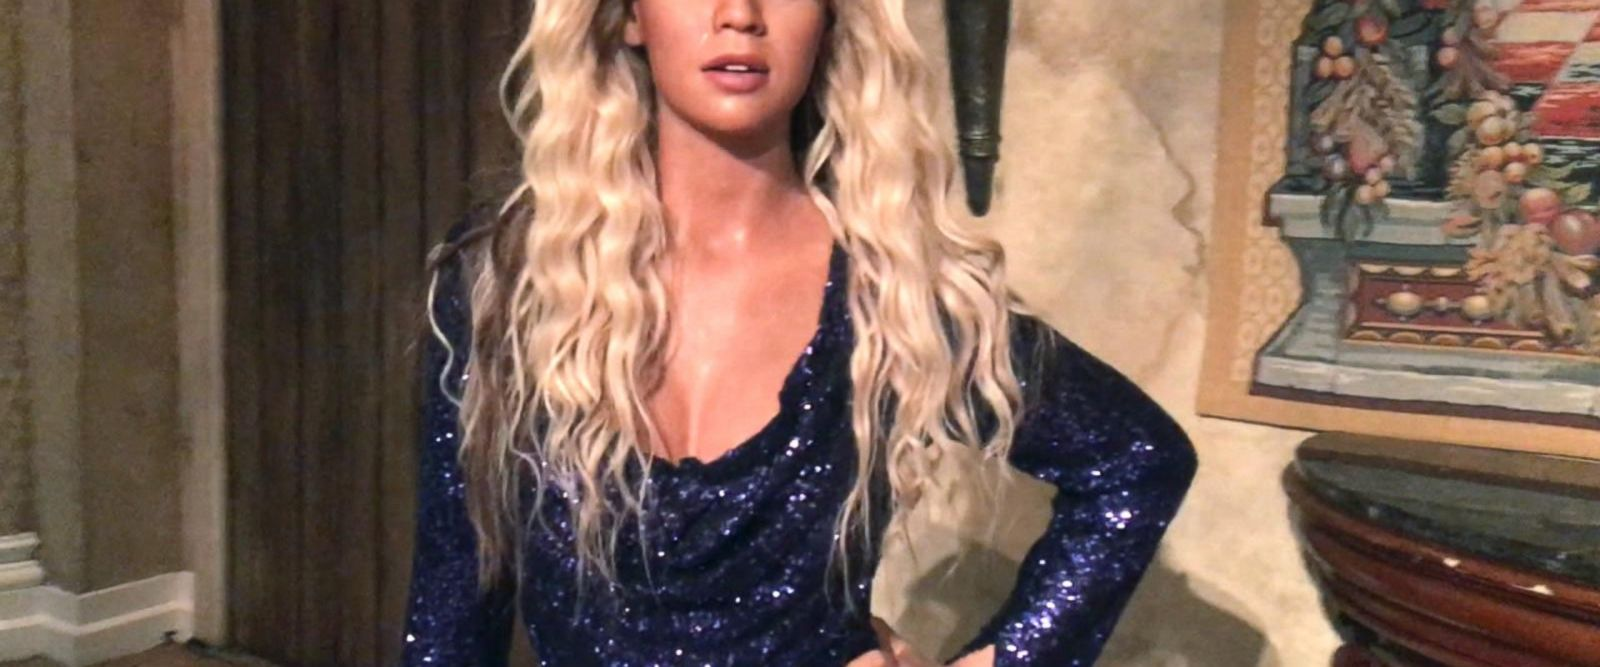 VIDEO: Madame Tussauds faces backlash over Beyonce wax figure